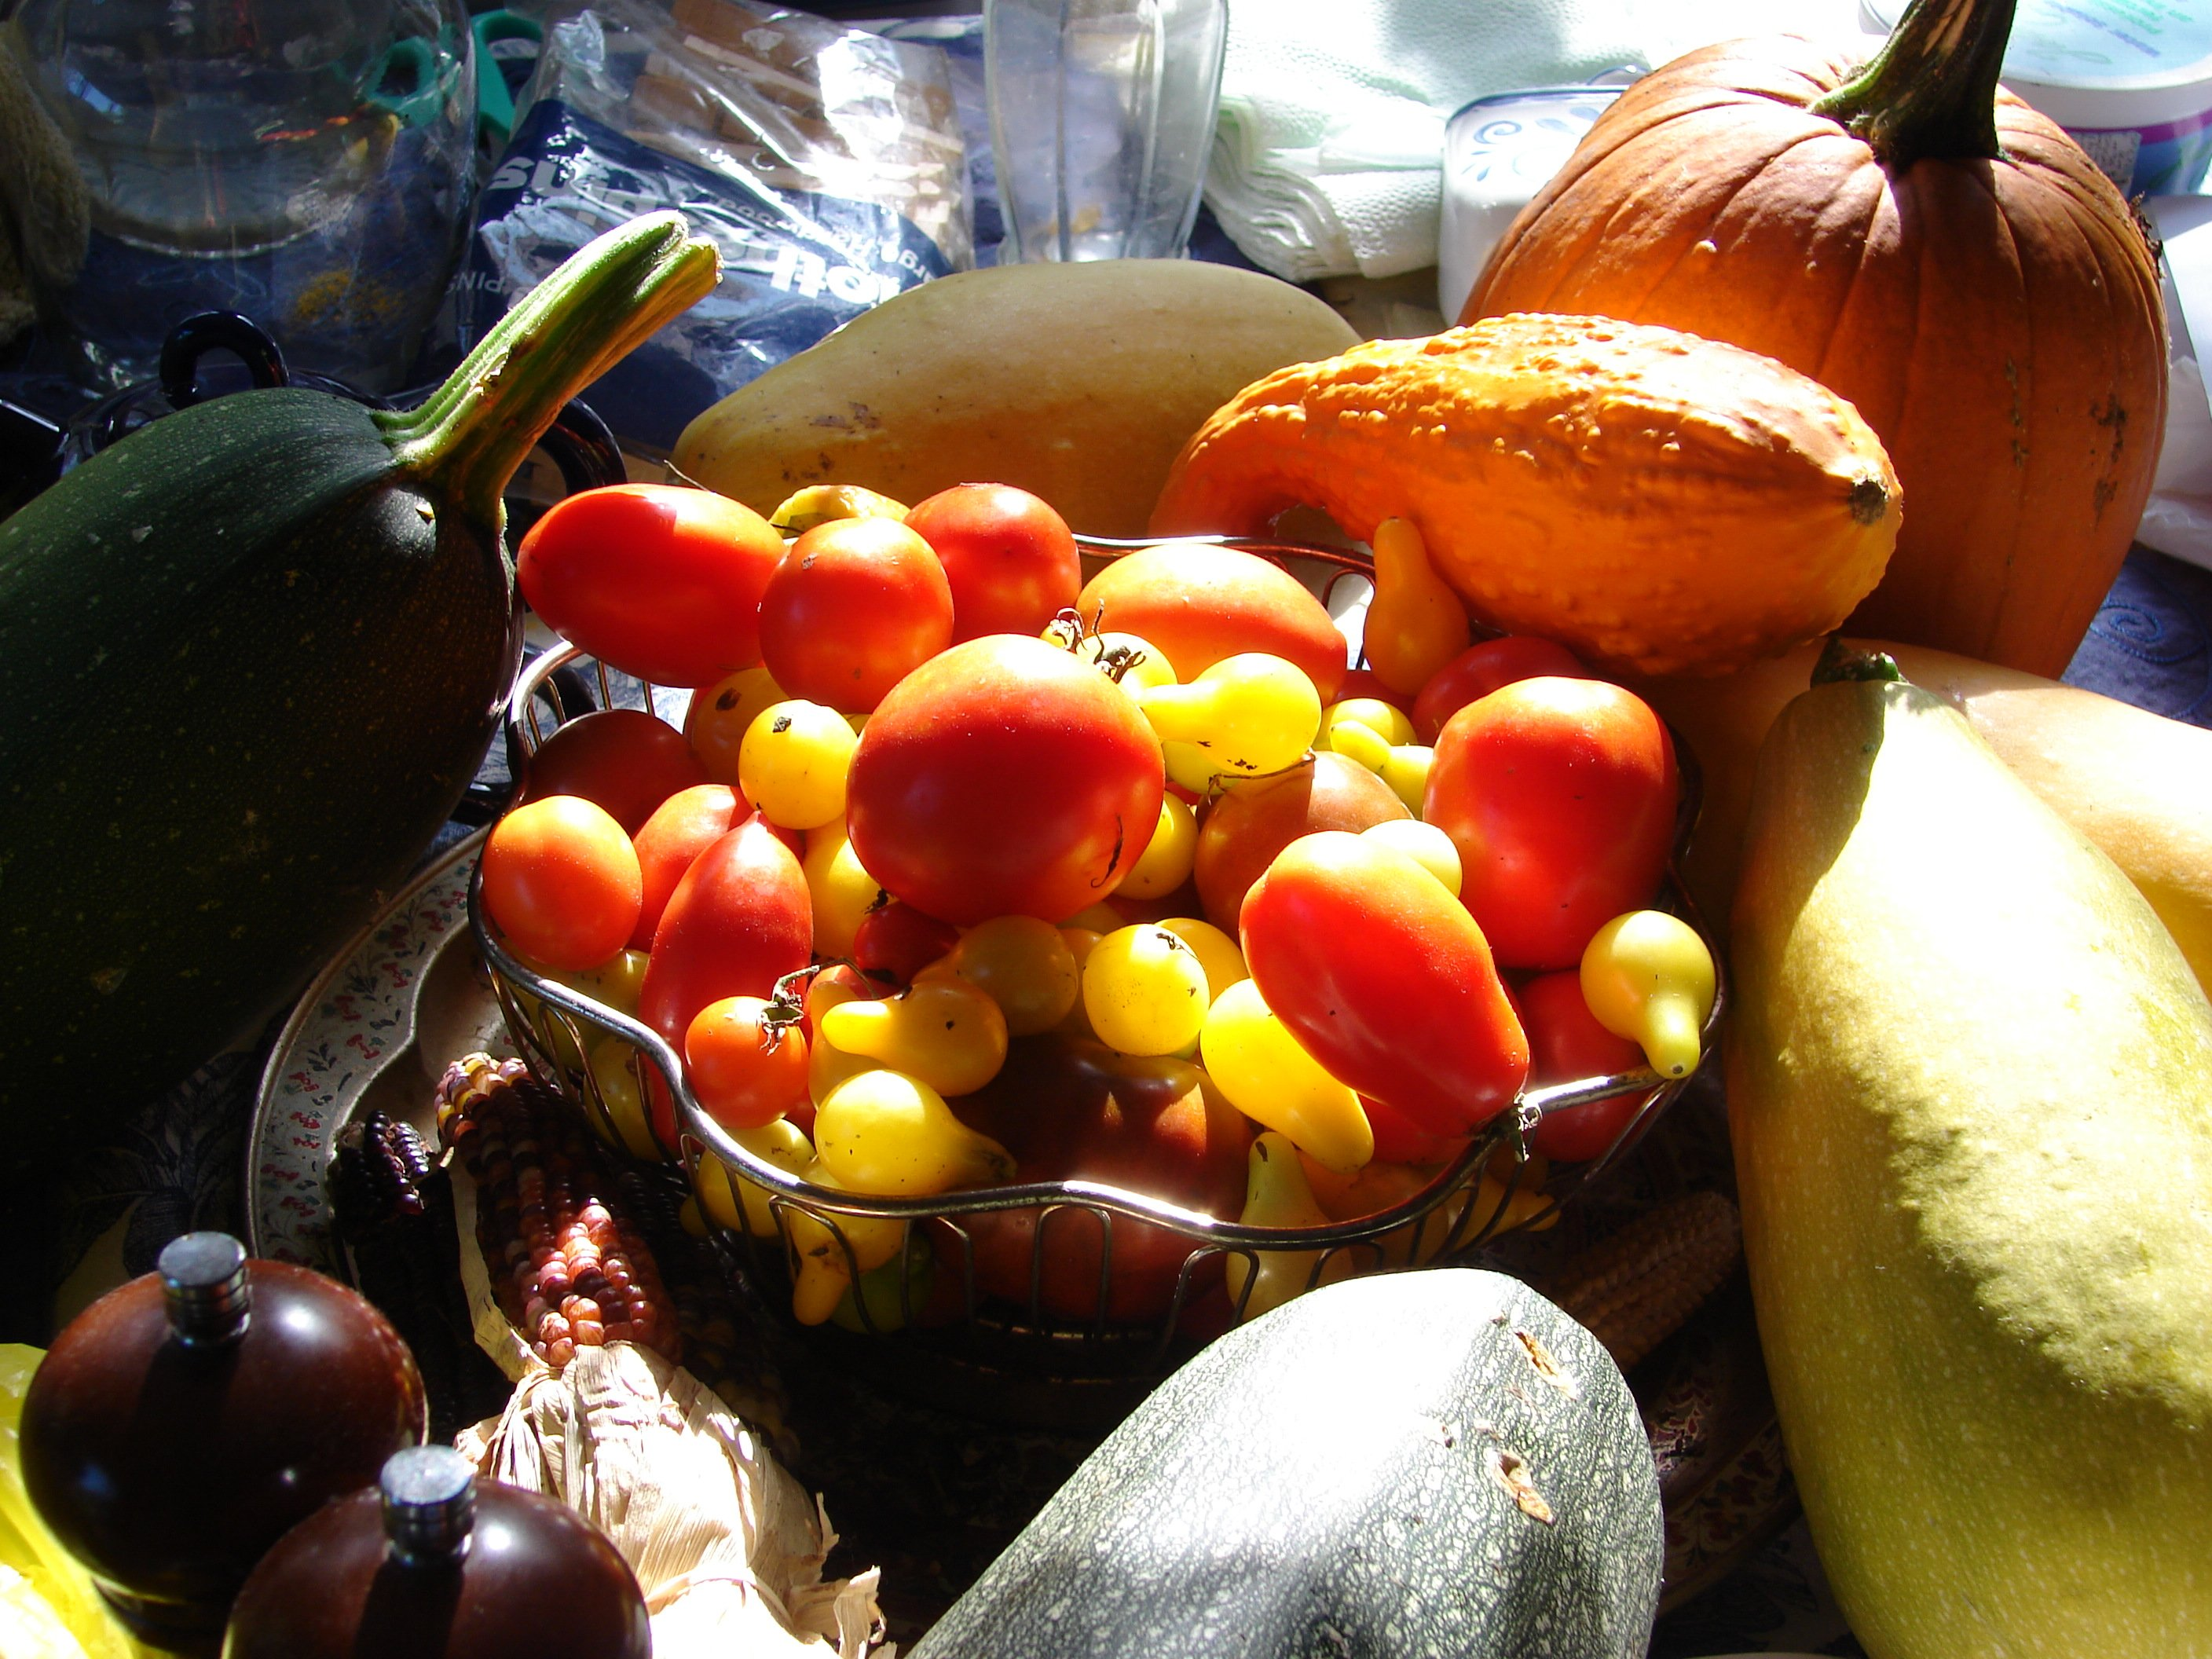 An arrangement of fruits commonly thought of as vegetables, including tomatoes and various squash